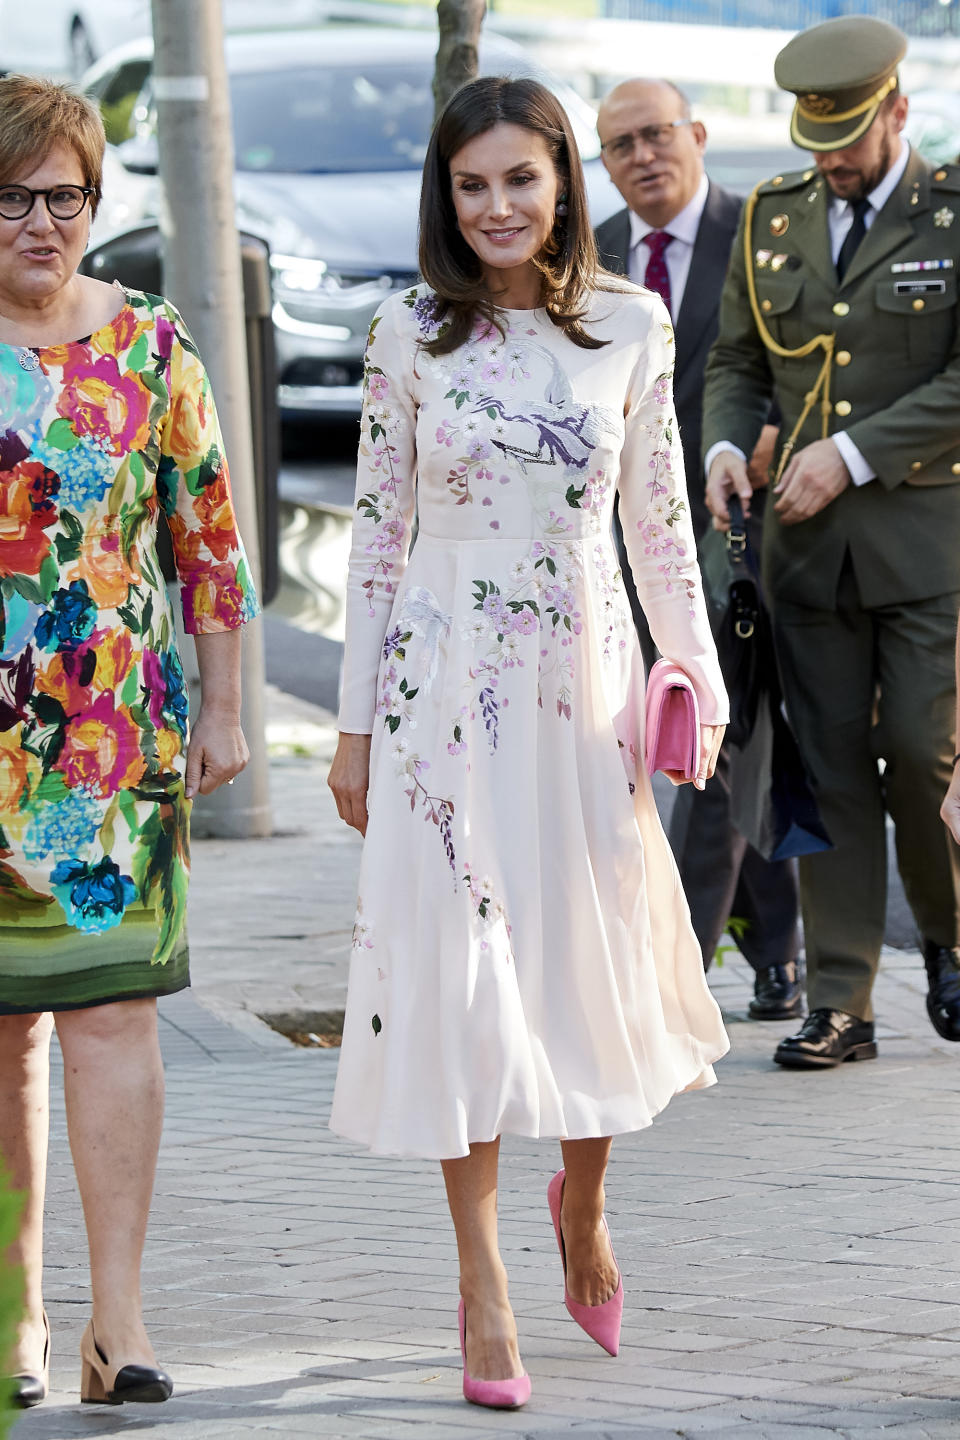 MADRID, SPAIN - JULY 08: Queen Letizia of Spain attends a meeting at the AECC (Spanish Association Against Cancer) on July 08, 2019 in Madrid, Spain. (Photo by Carlos R. Alvarez/WireImage)